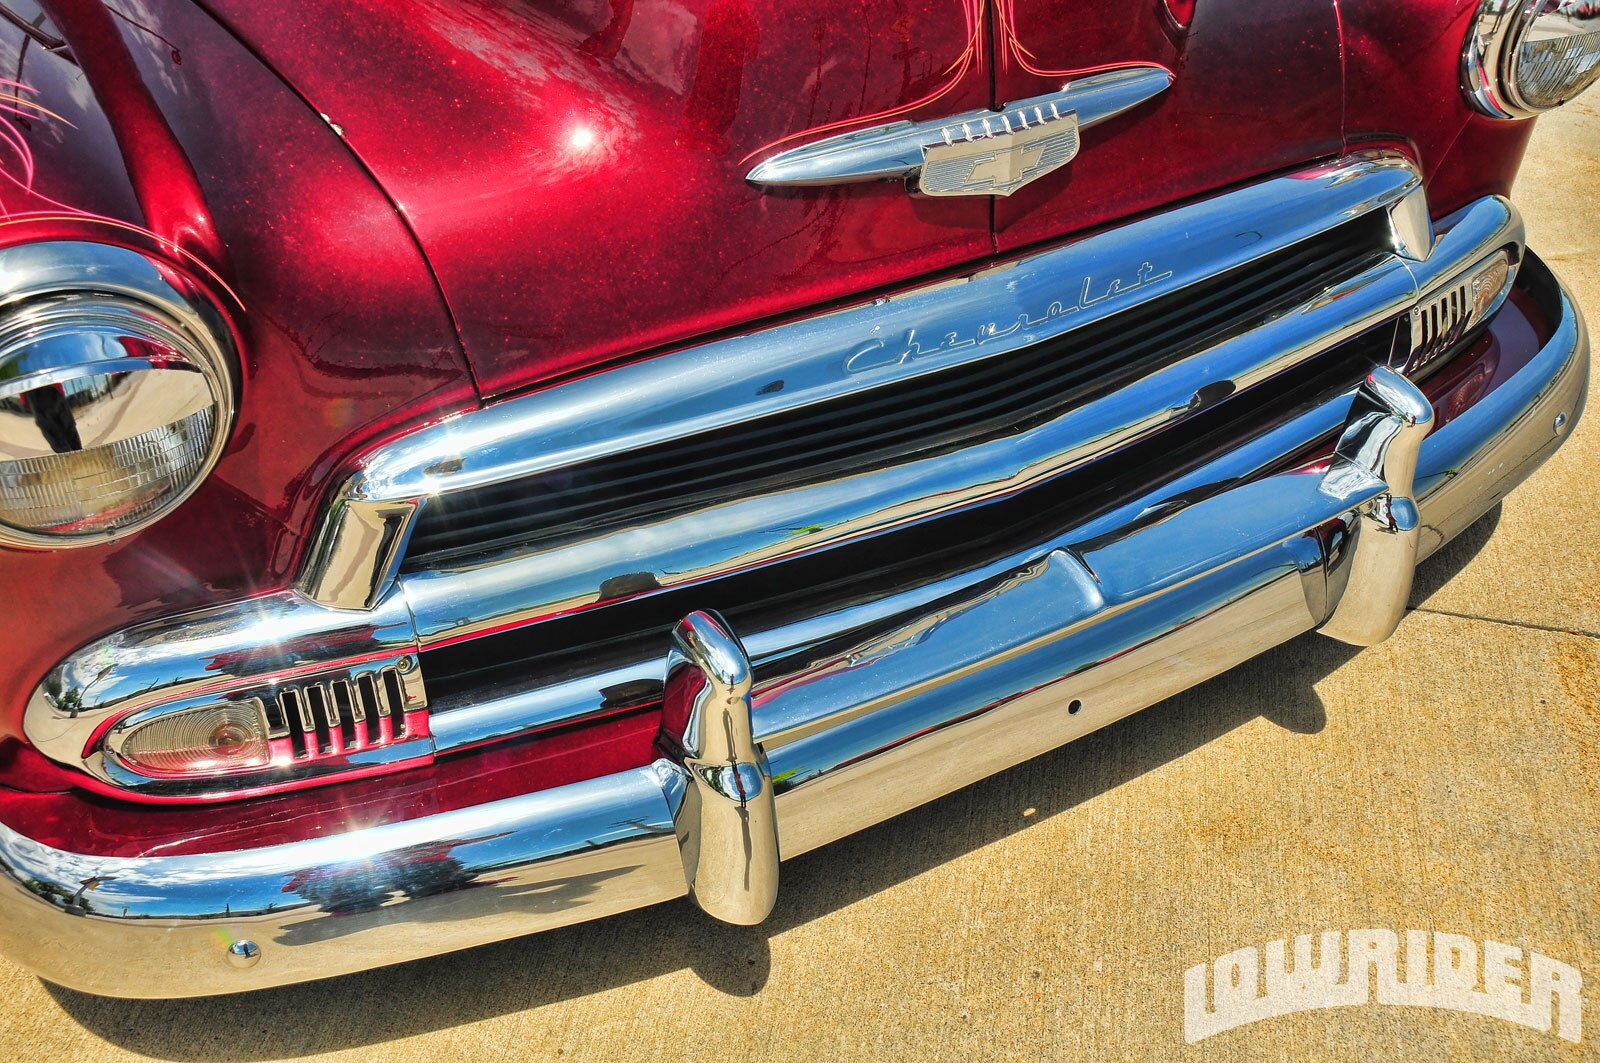 All Chevy 1951 chevy deluxe for sale 1951 Chevrolet Deluxe Convertible & 1963 Chevrolet Impala ...